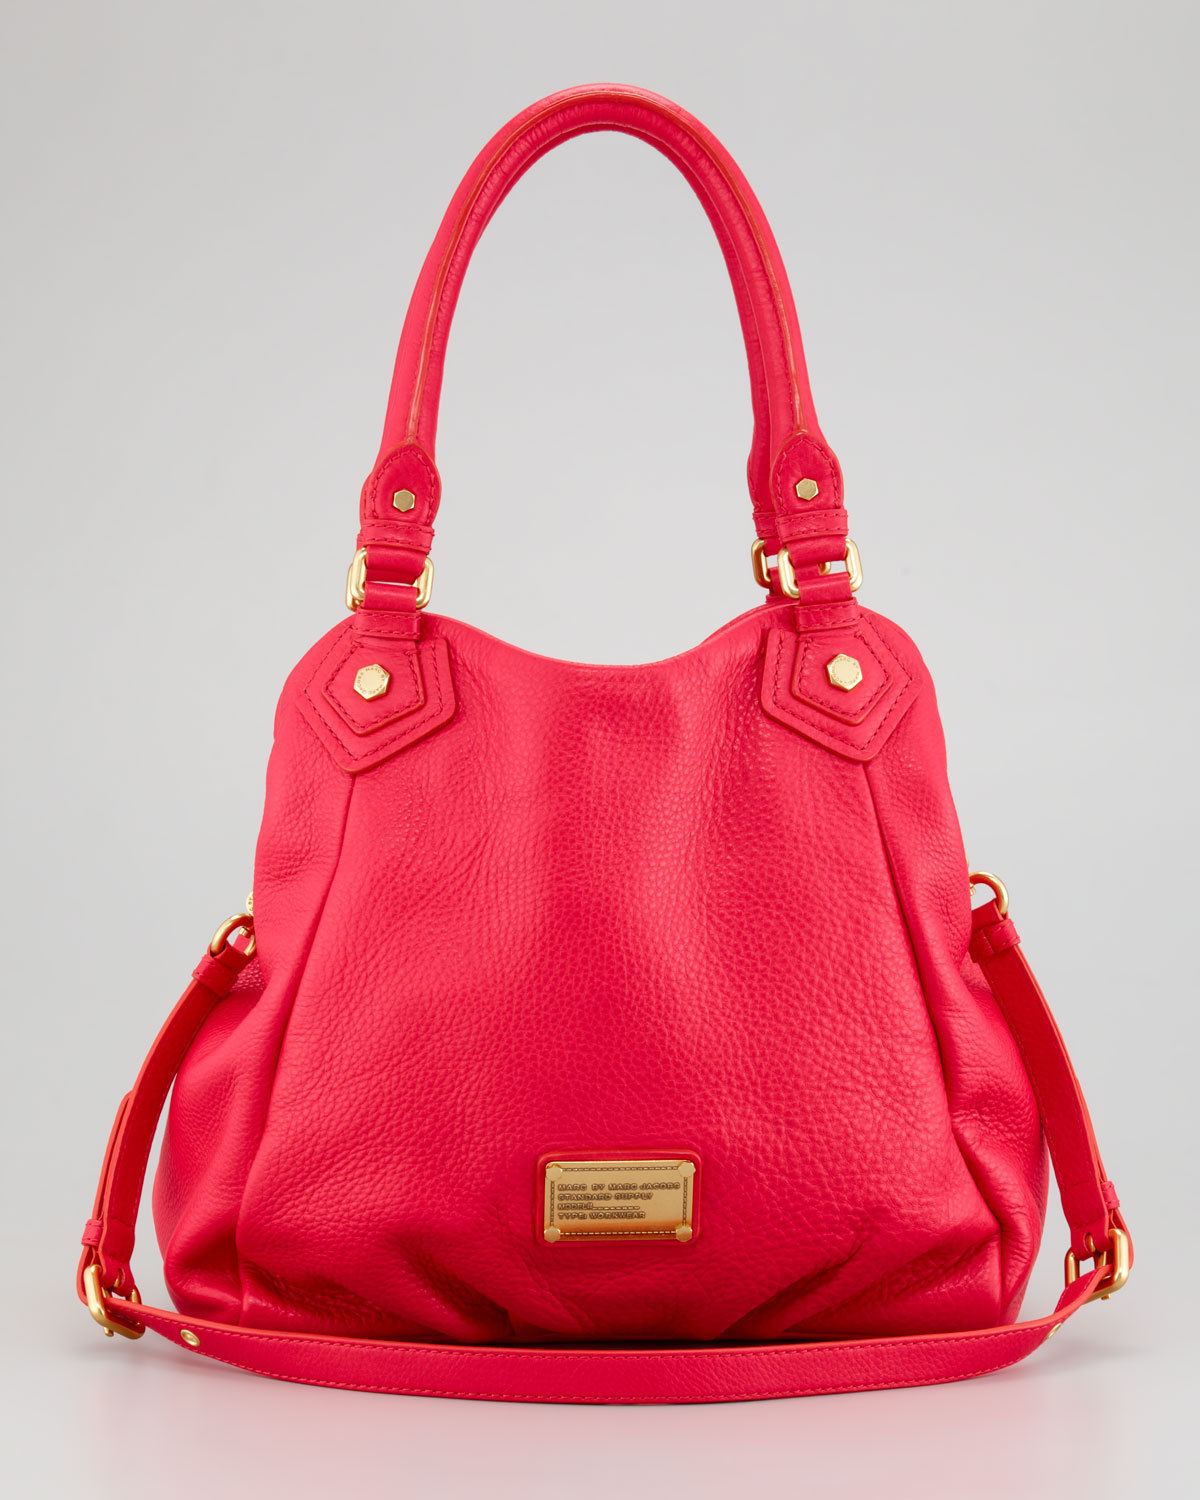 Primary image for NWT MARC BY MARC JACOBS Classic Q Fran Red Leather Shoulder Tote $480+ AUTHENTIC